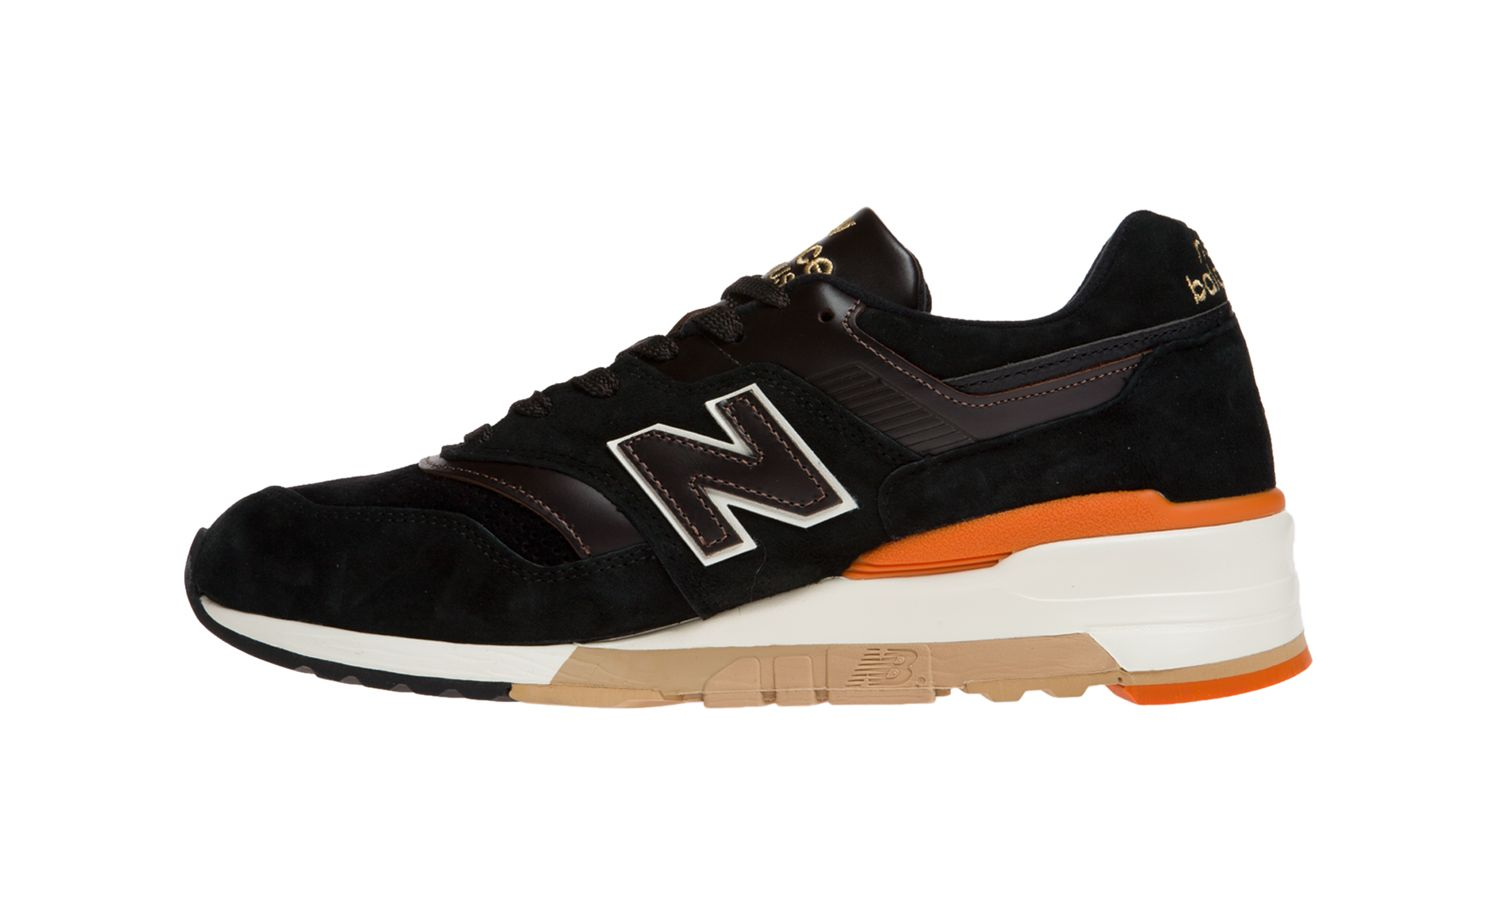 New Balance 997 Distinct Made in the USA